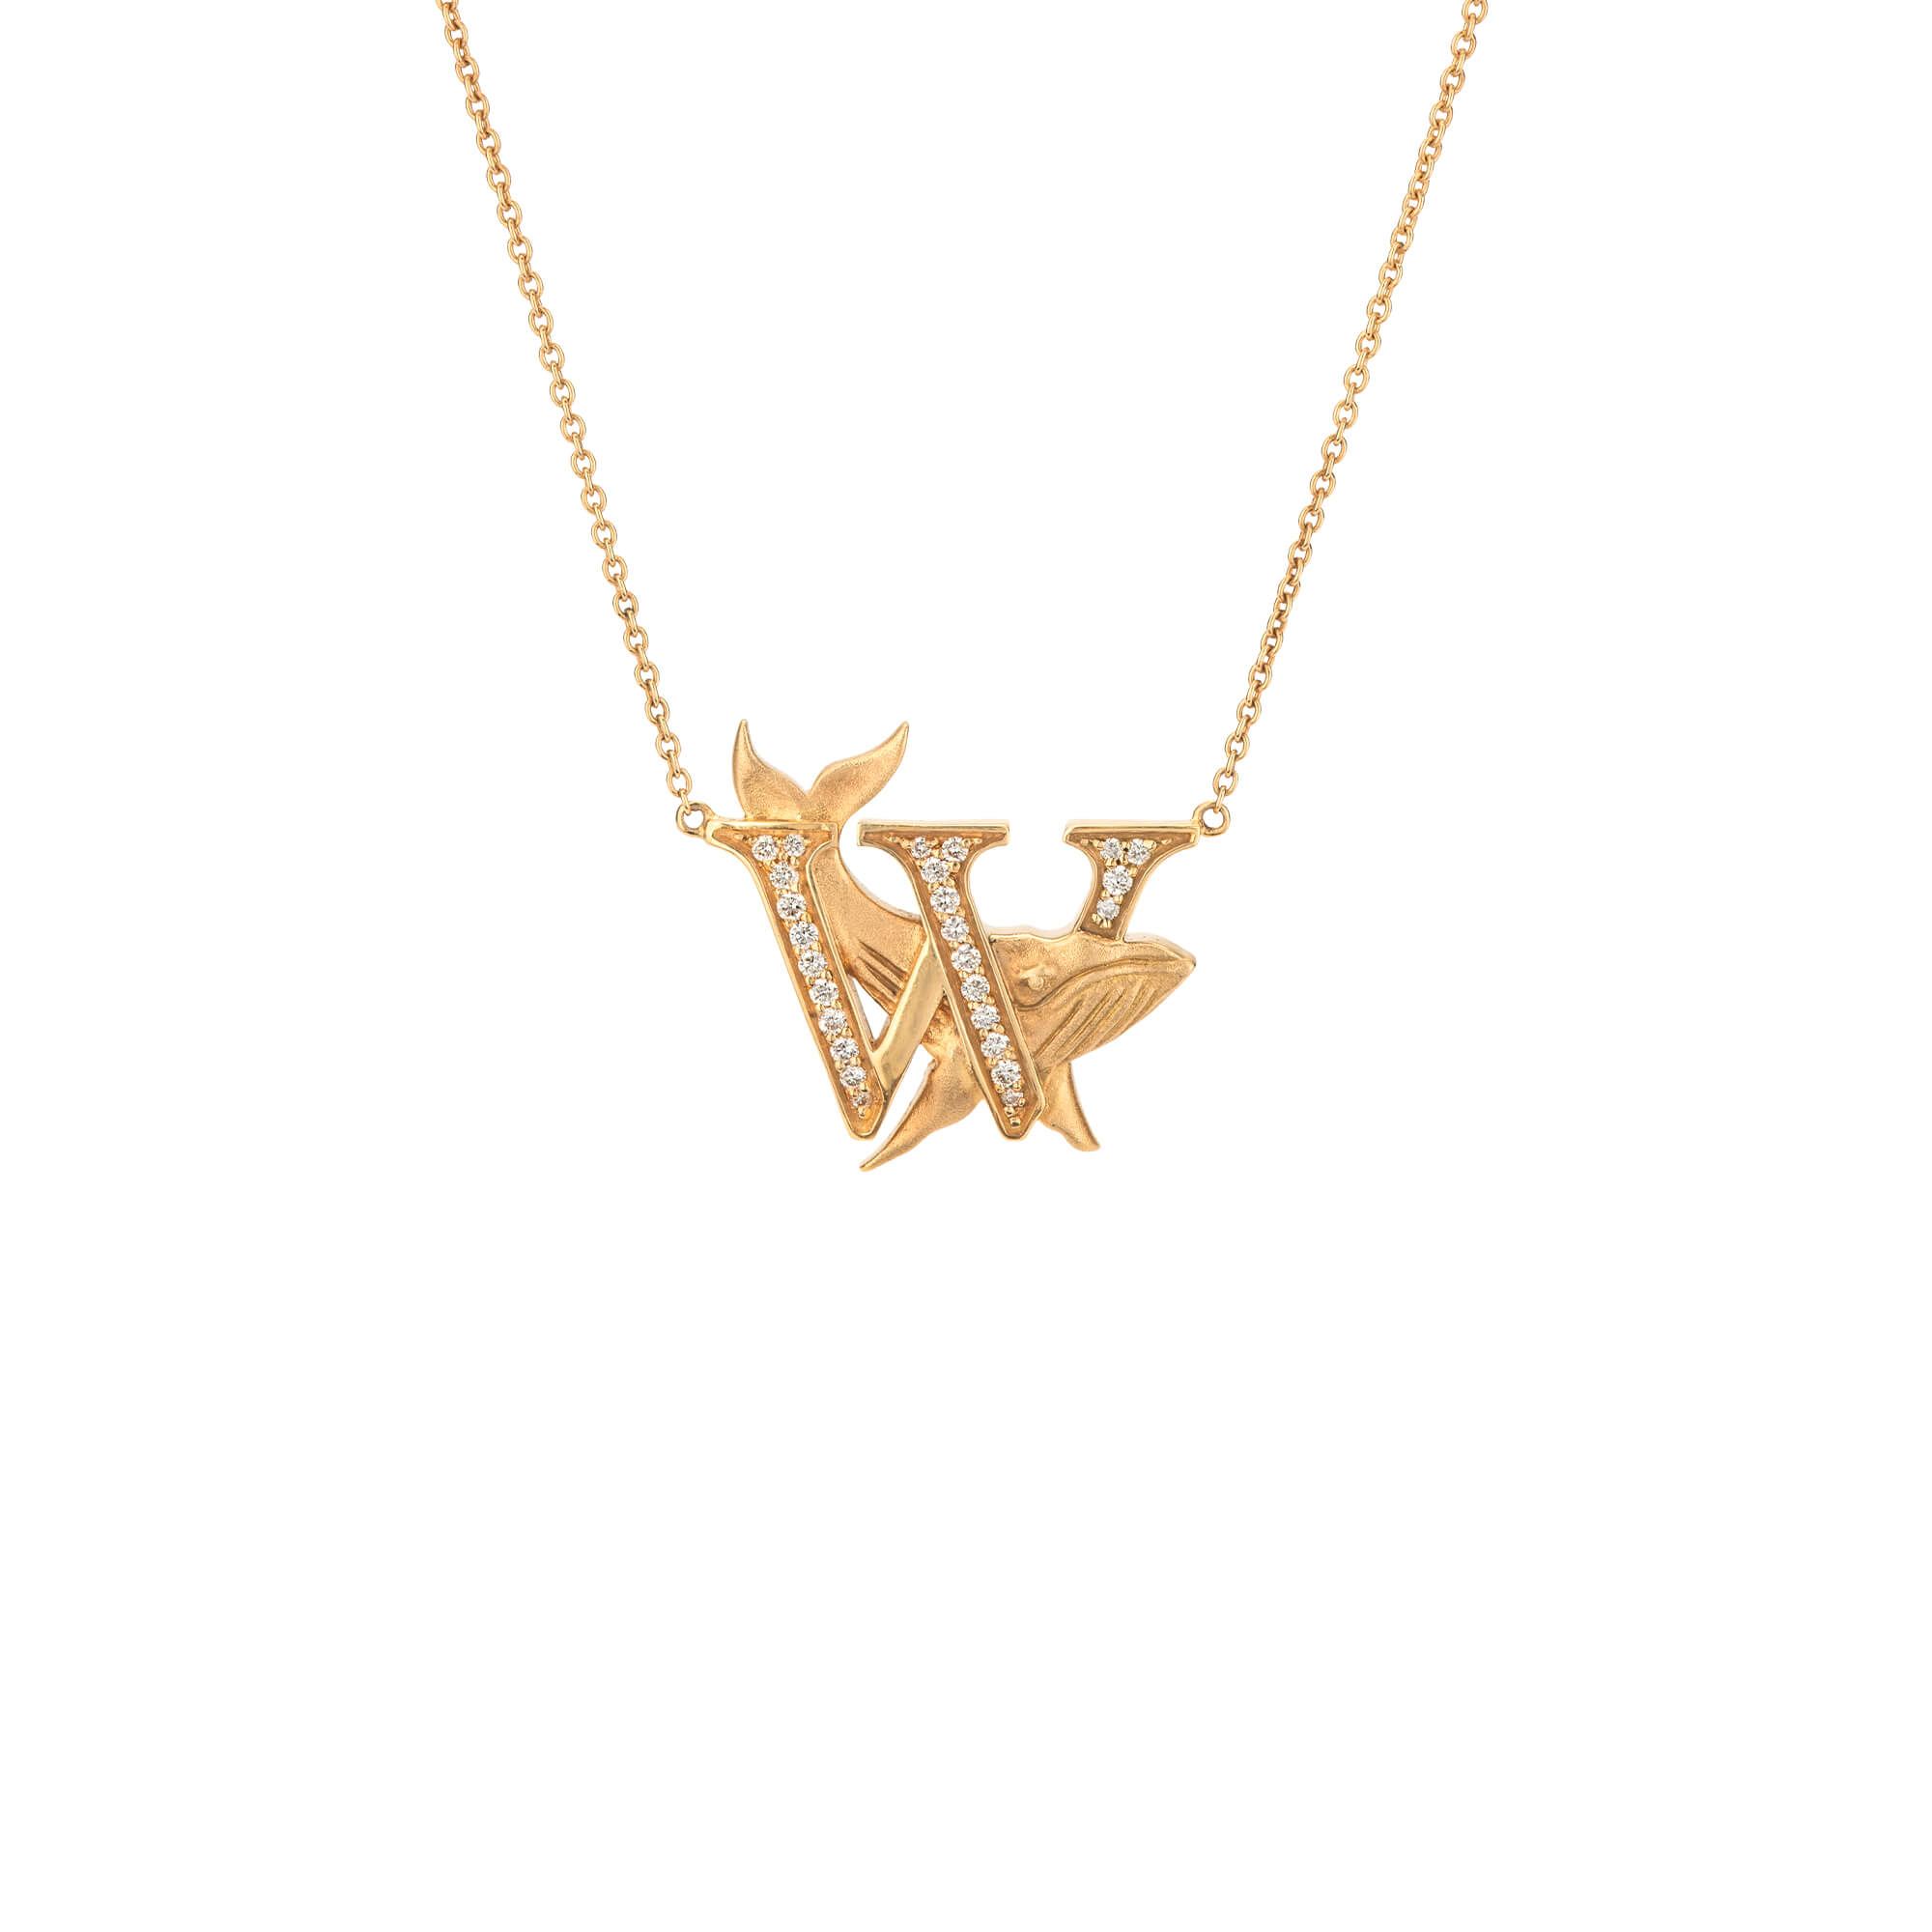 W is for Whale Gold Necklace | Fish Tales